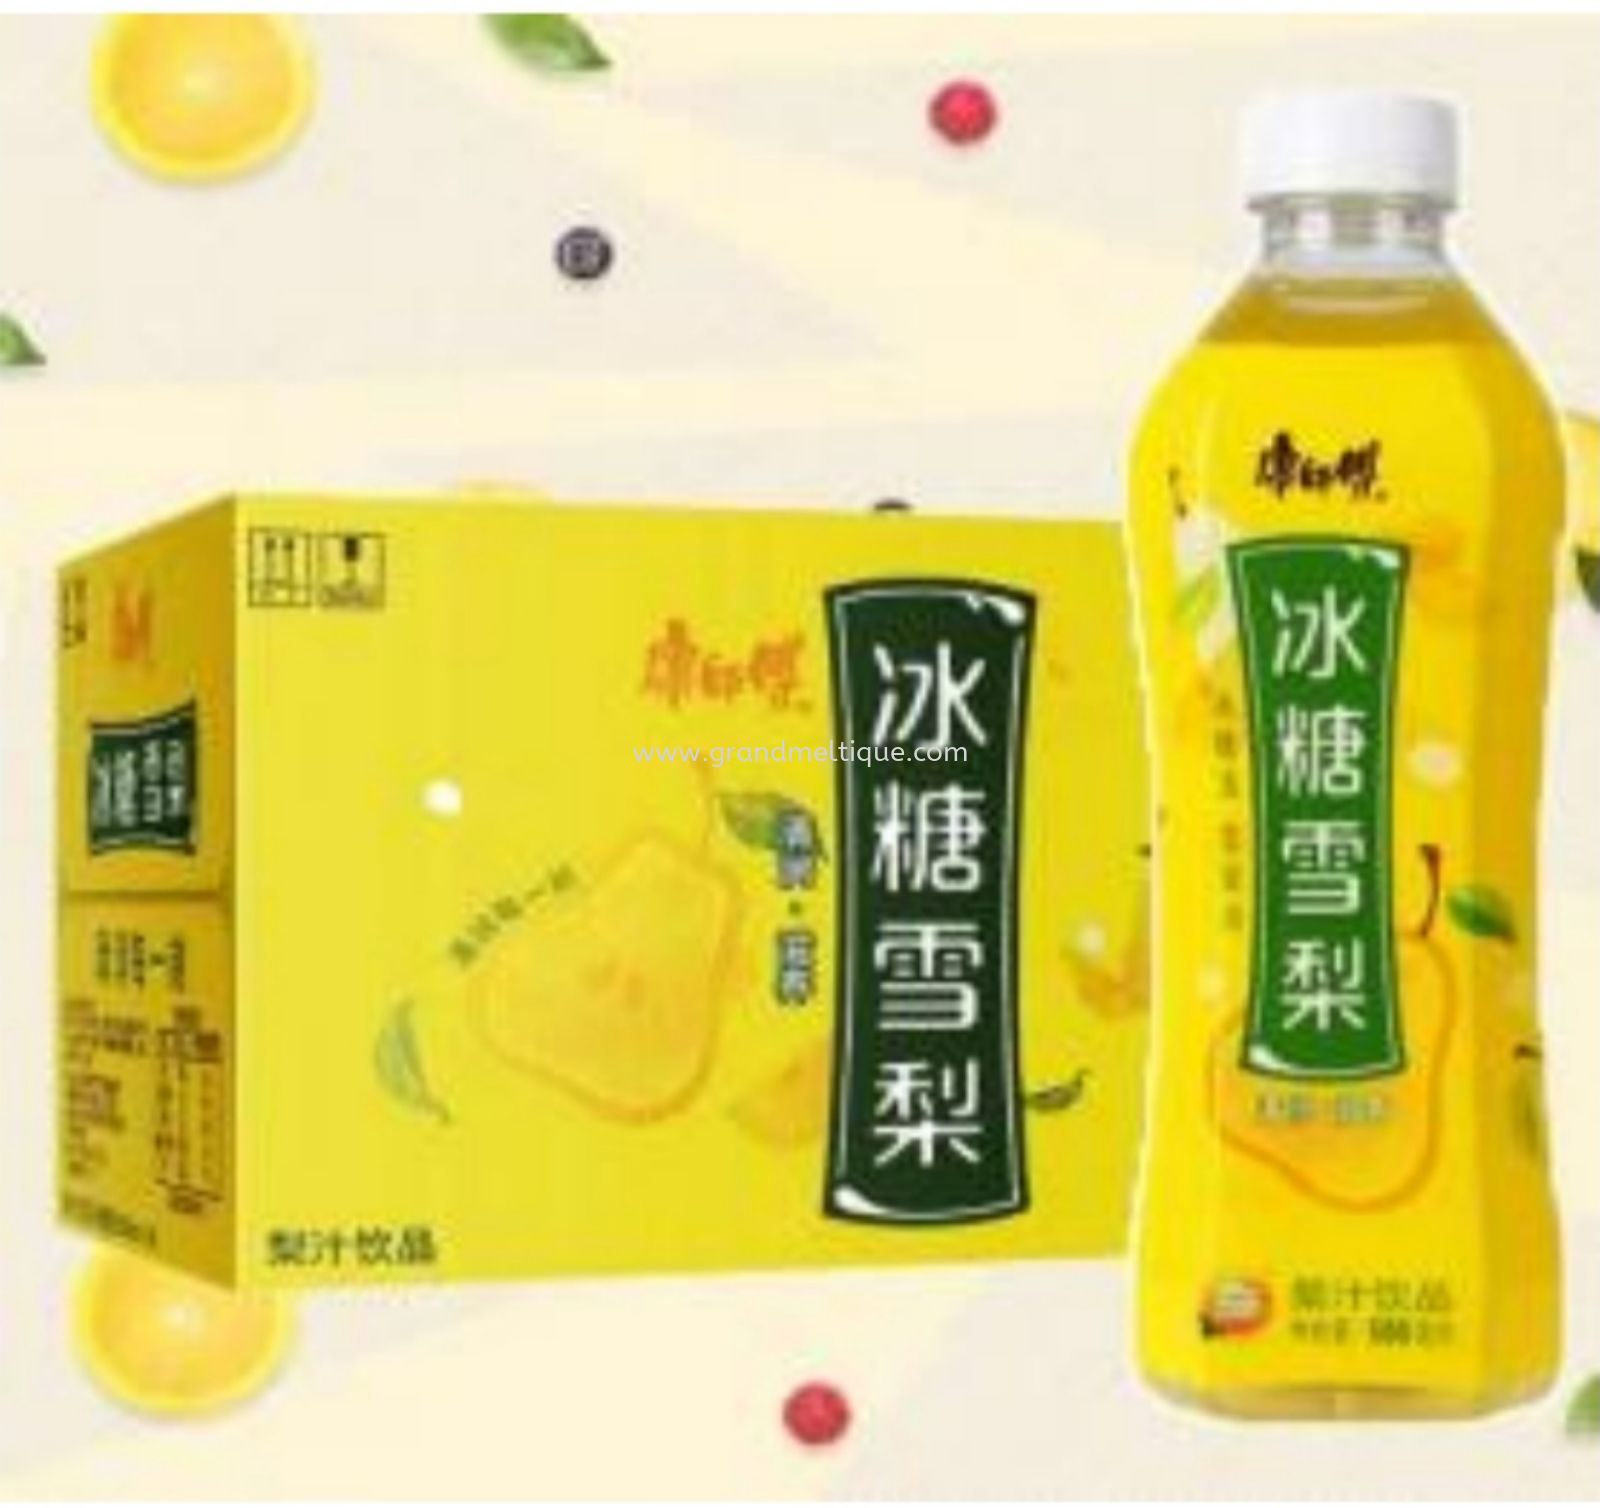 KANG SHI FU ROCK SUGAR PEAR JUICE